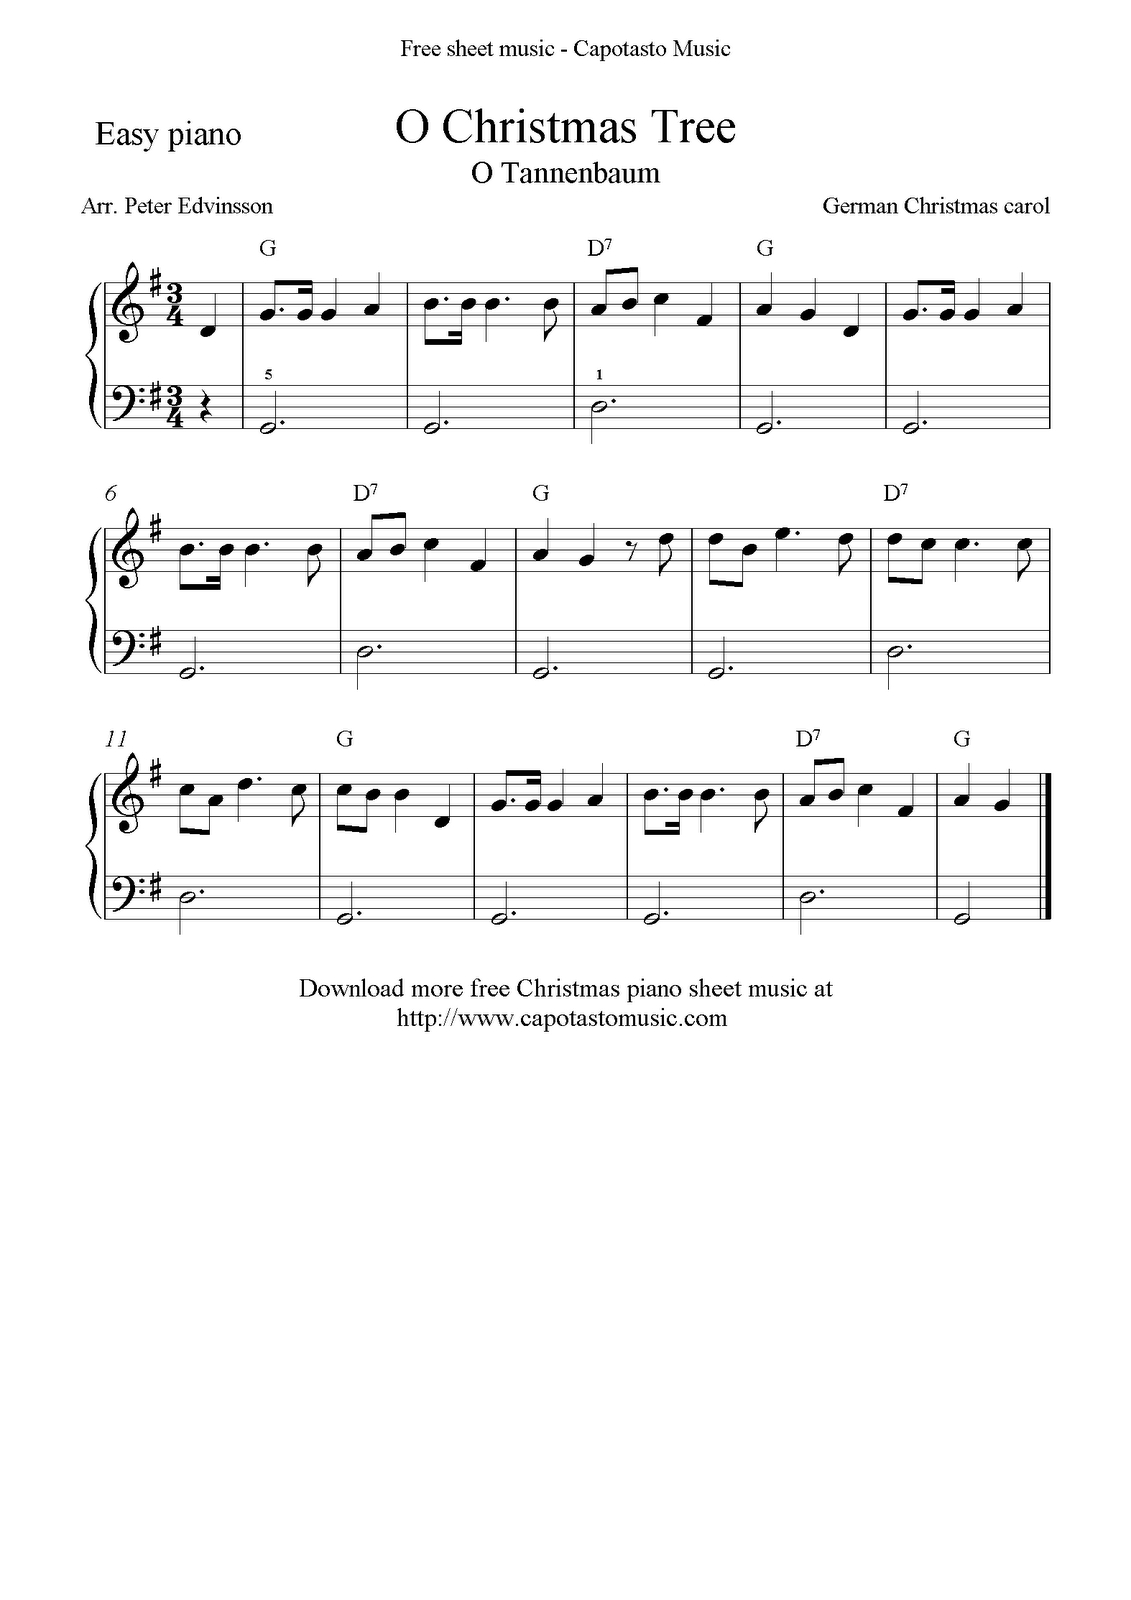 Free Christmas Sheet Music For Easy Piano Solo, O Christmas Tree - Free Printable Christmas Music Sheets Piano